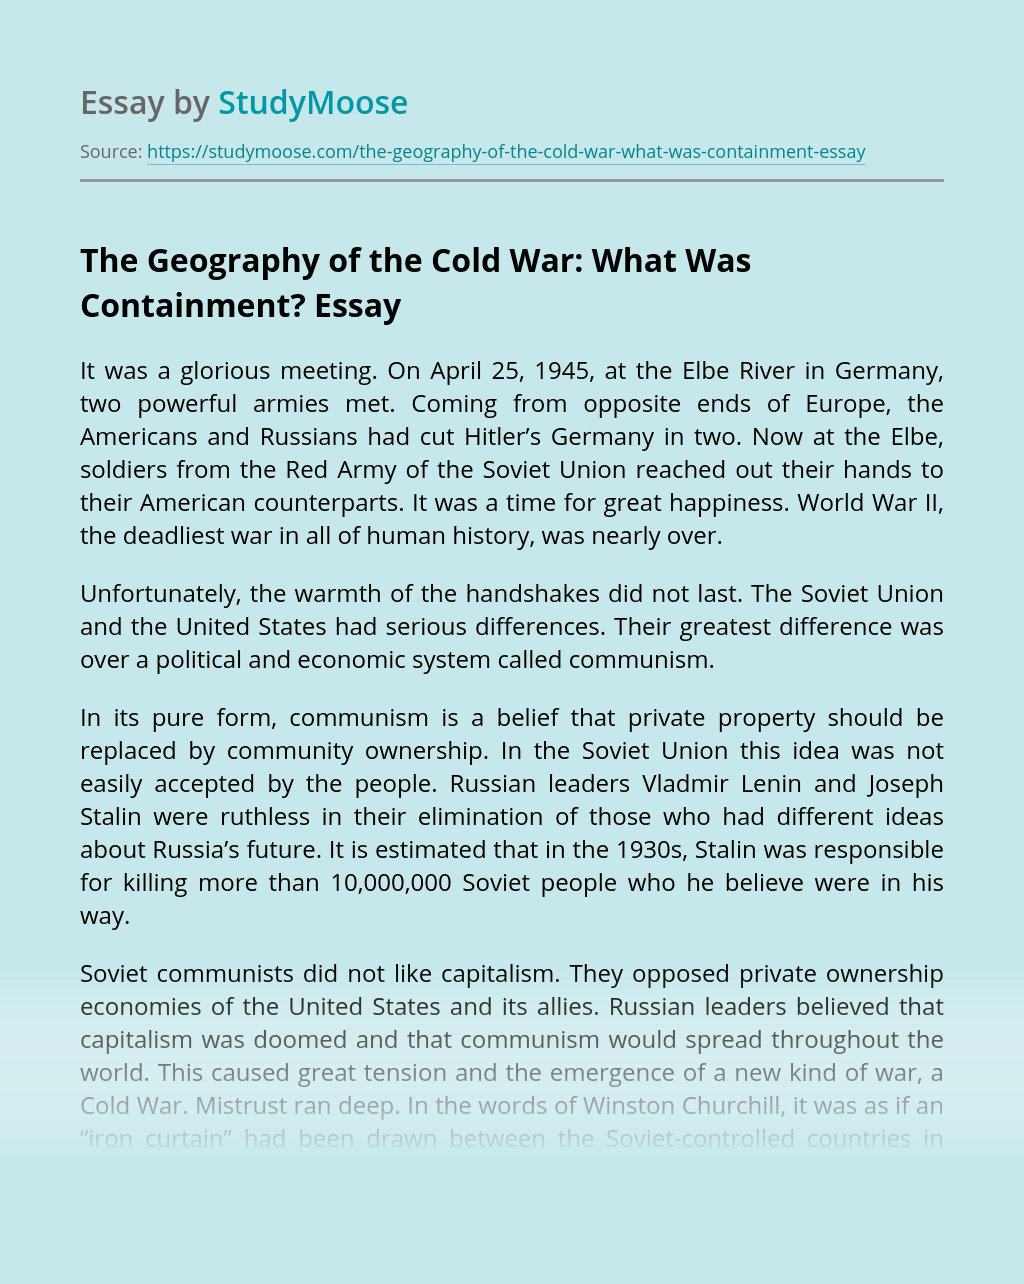 The Geography of the Cold War: What Was Containment?